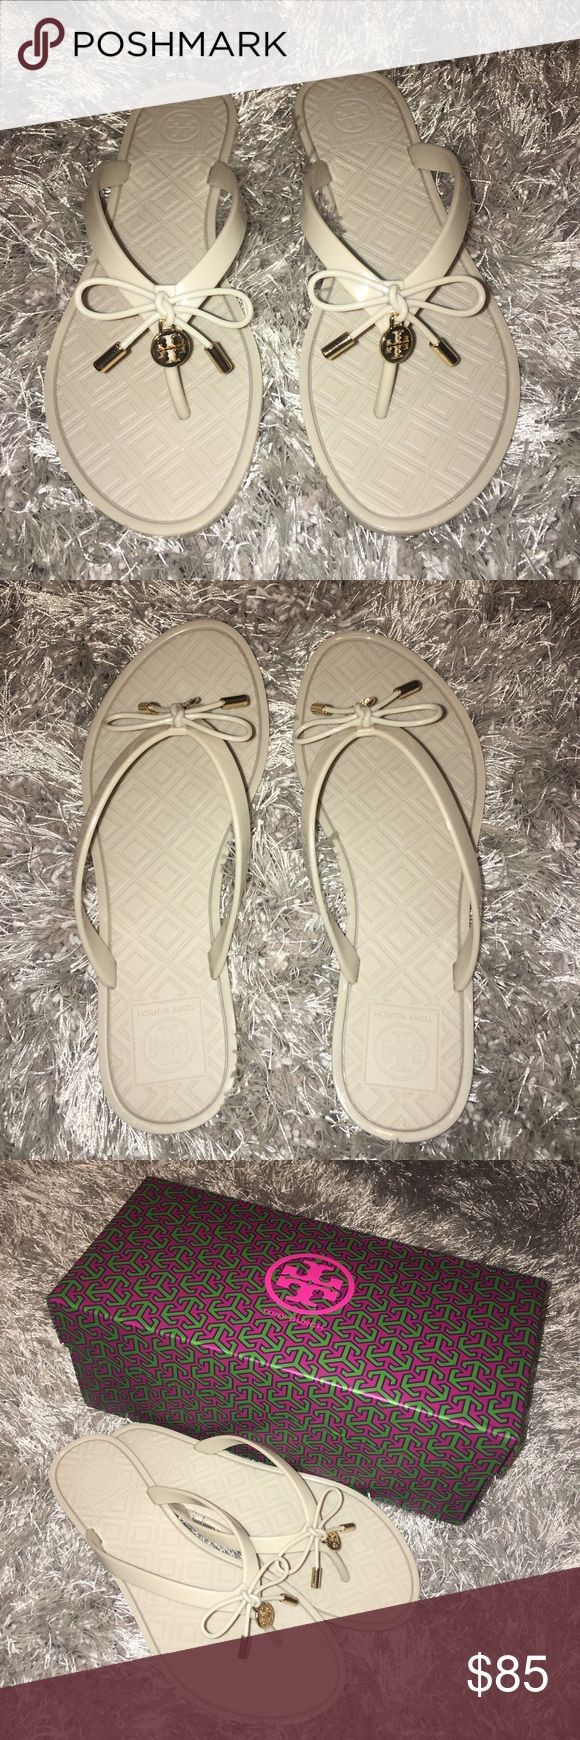 TORY BURCH JELLY FLIP FLOPS These cute little jellies are a beige/tan shade! They are brand new and never worn and come with the original box. Jellies will be wrapped and packed like brand new! The detailing on the front is a tied bow with gold details on ends and Tory Burch sign.  Prices are negotiable ✨  Please only make official offers ✨ Tory Burch Shoes Sandals